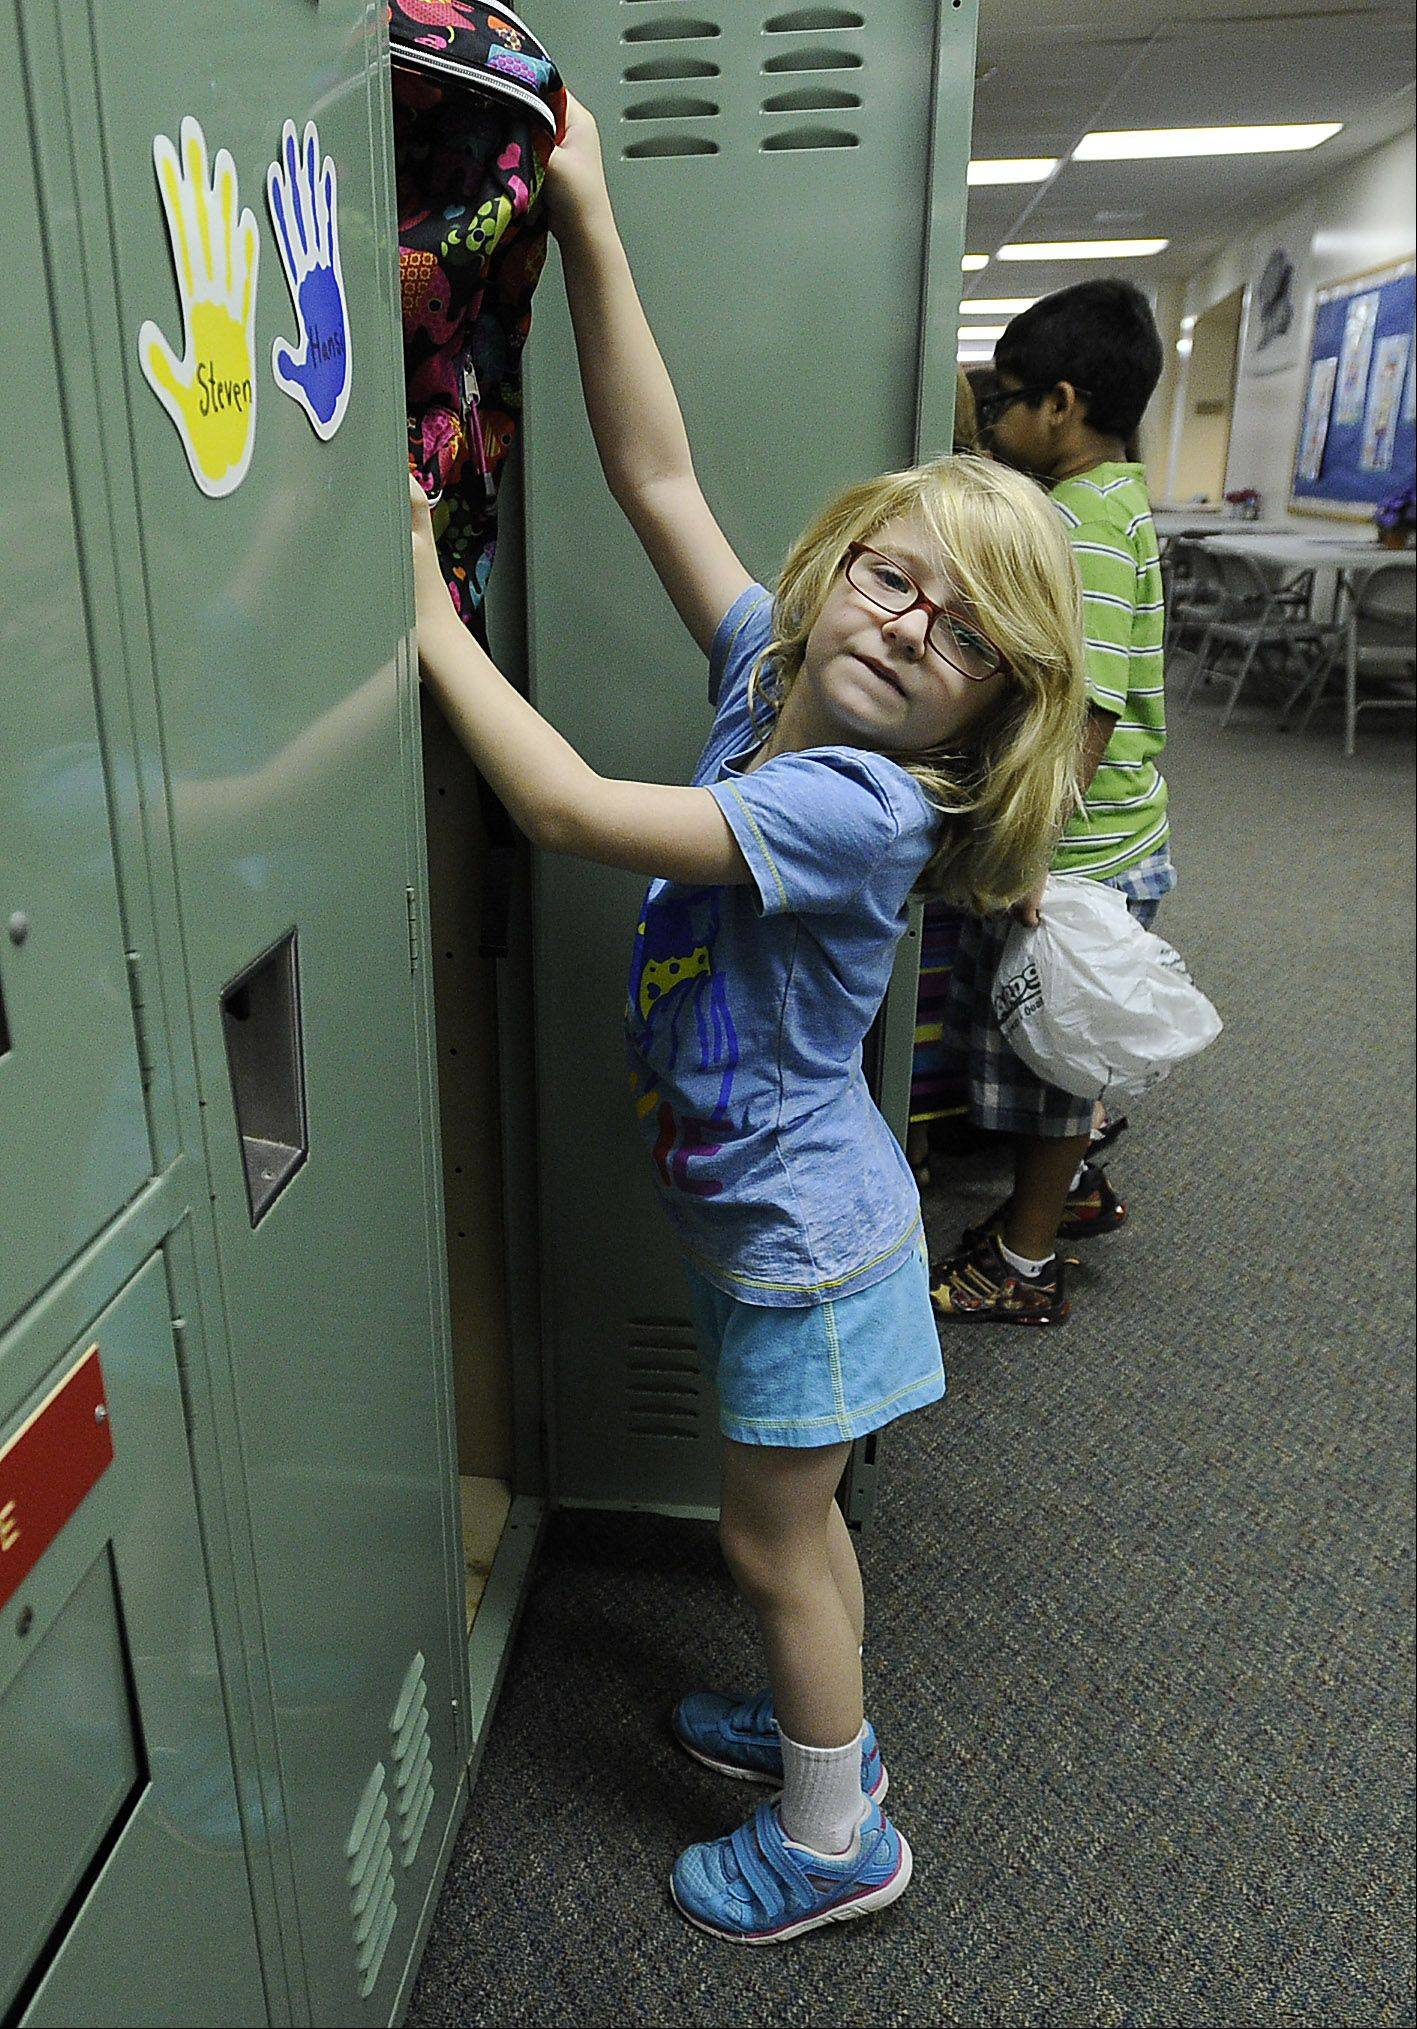 Abby Riskus, 7, has difficulty reaching the top shelf of her locker to store school supplies on the first day of school Monday at Frank C. Whiteley Elementary School in Hoffman Estates.